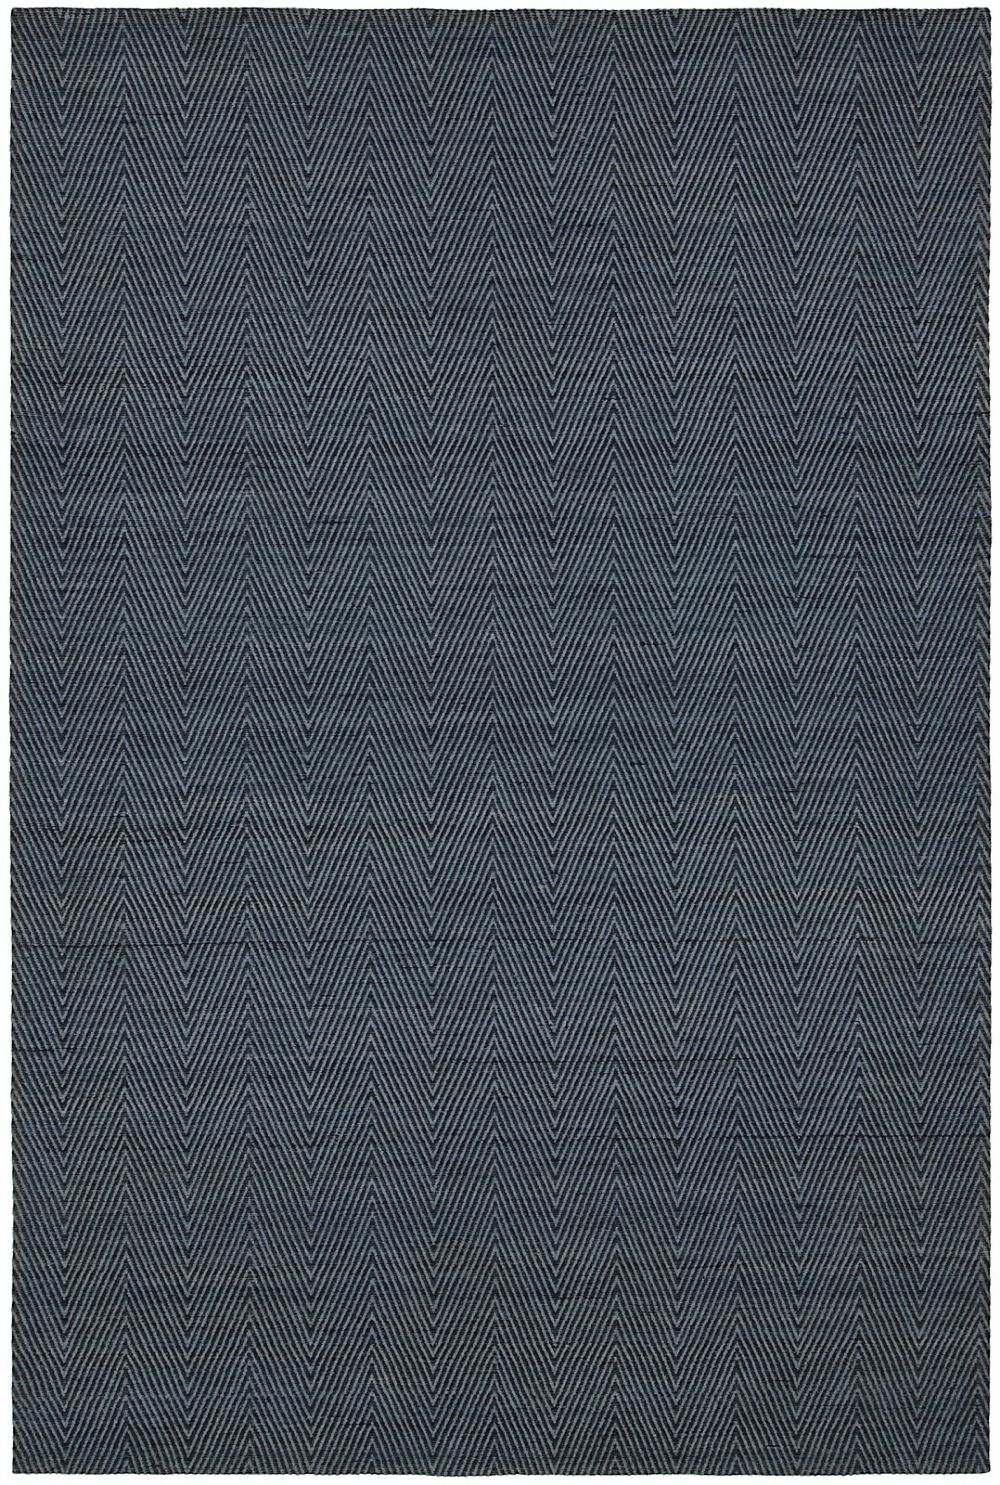 chandra ciara contemporary area rug collection